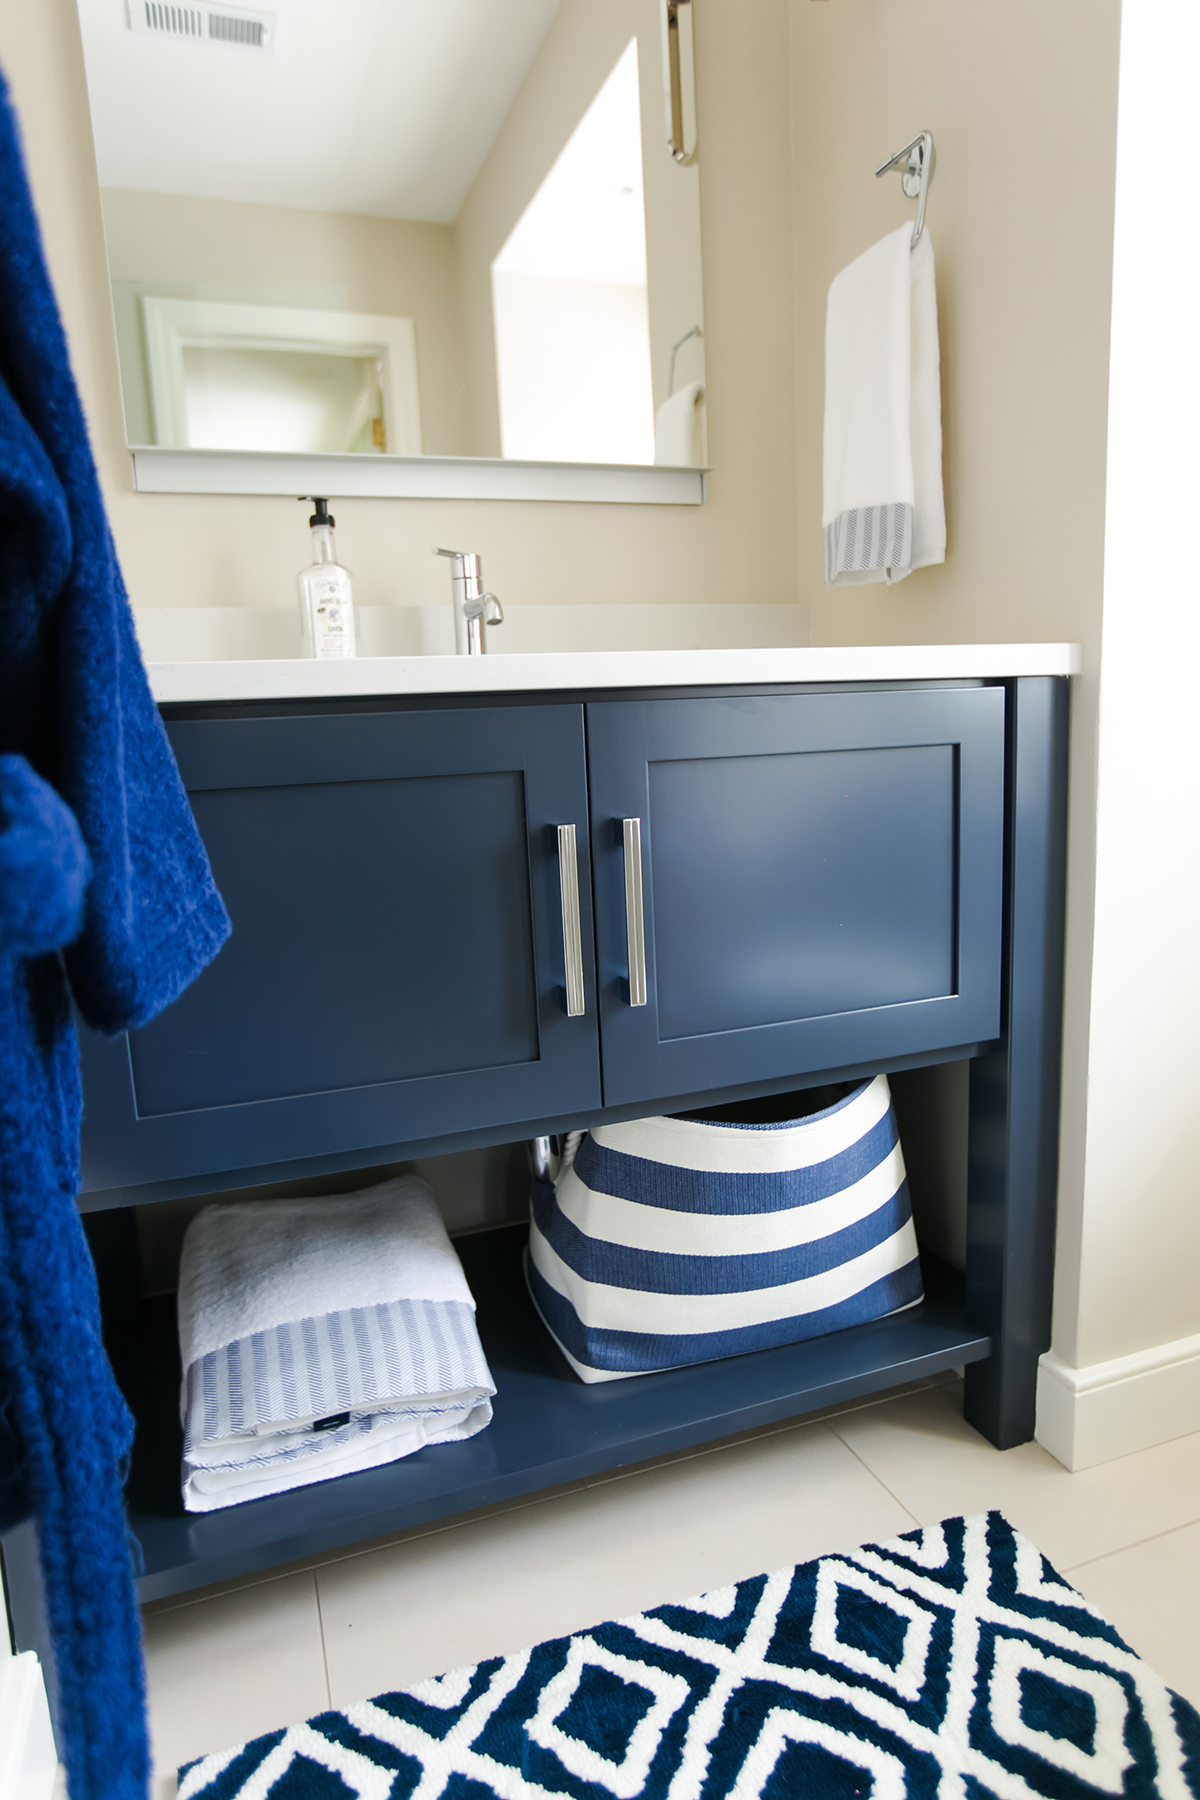 kids nautical bathroom, blue and white bathroom, hudson valley lightening, hudson valley lightning, build in medicine cabinet, open shelf bathroom vanity, red hook pendant lights, trinsic faucet